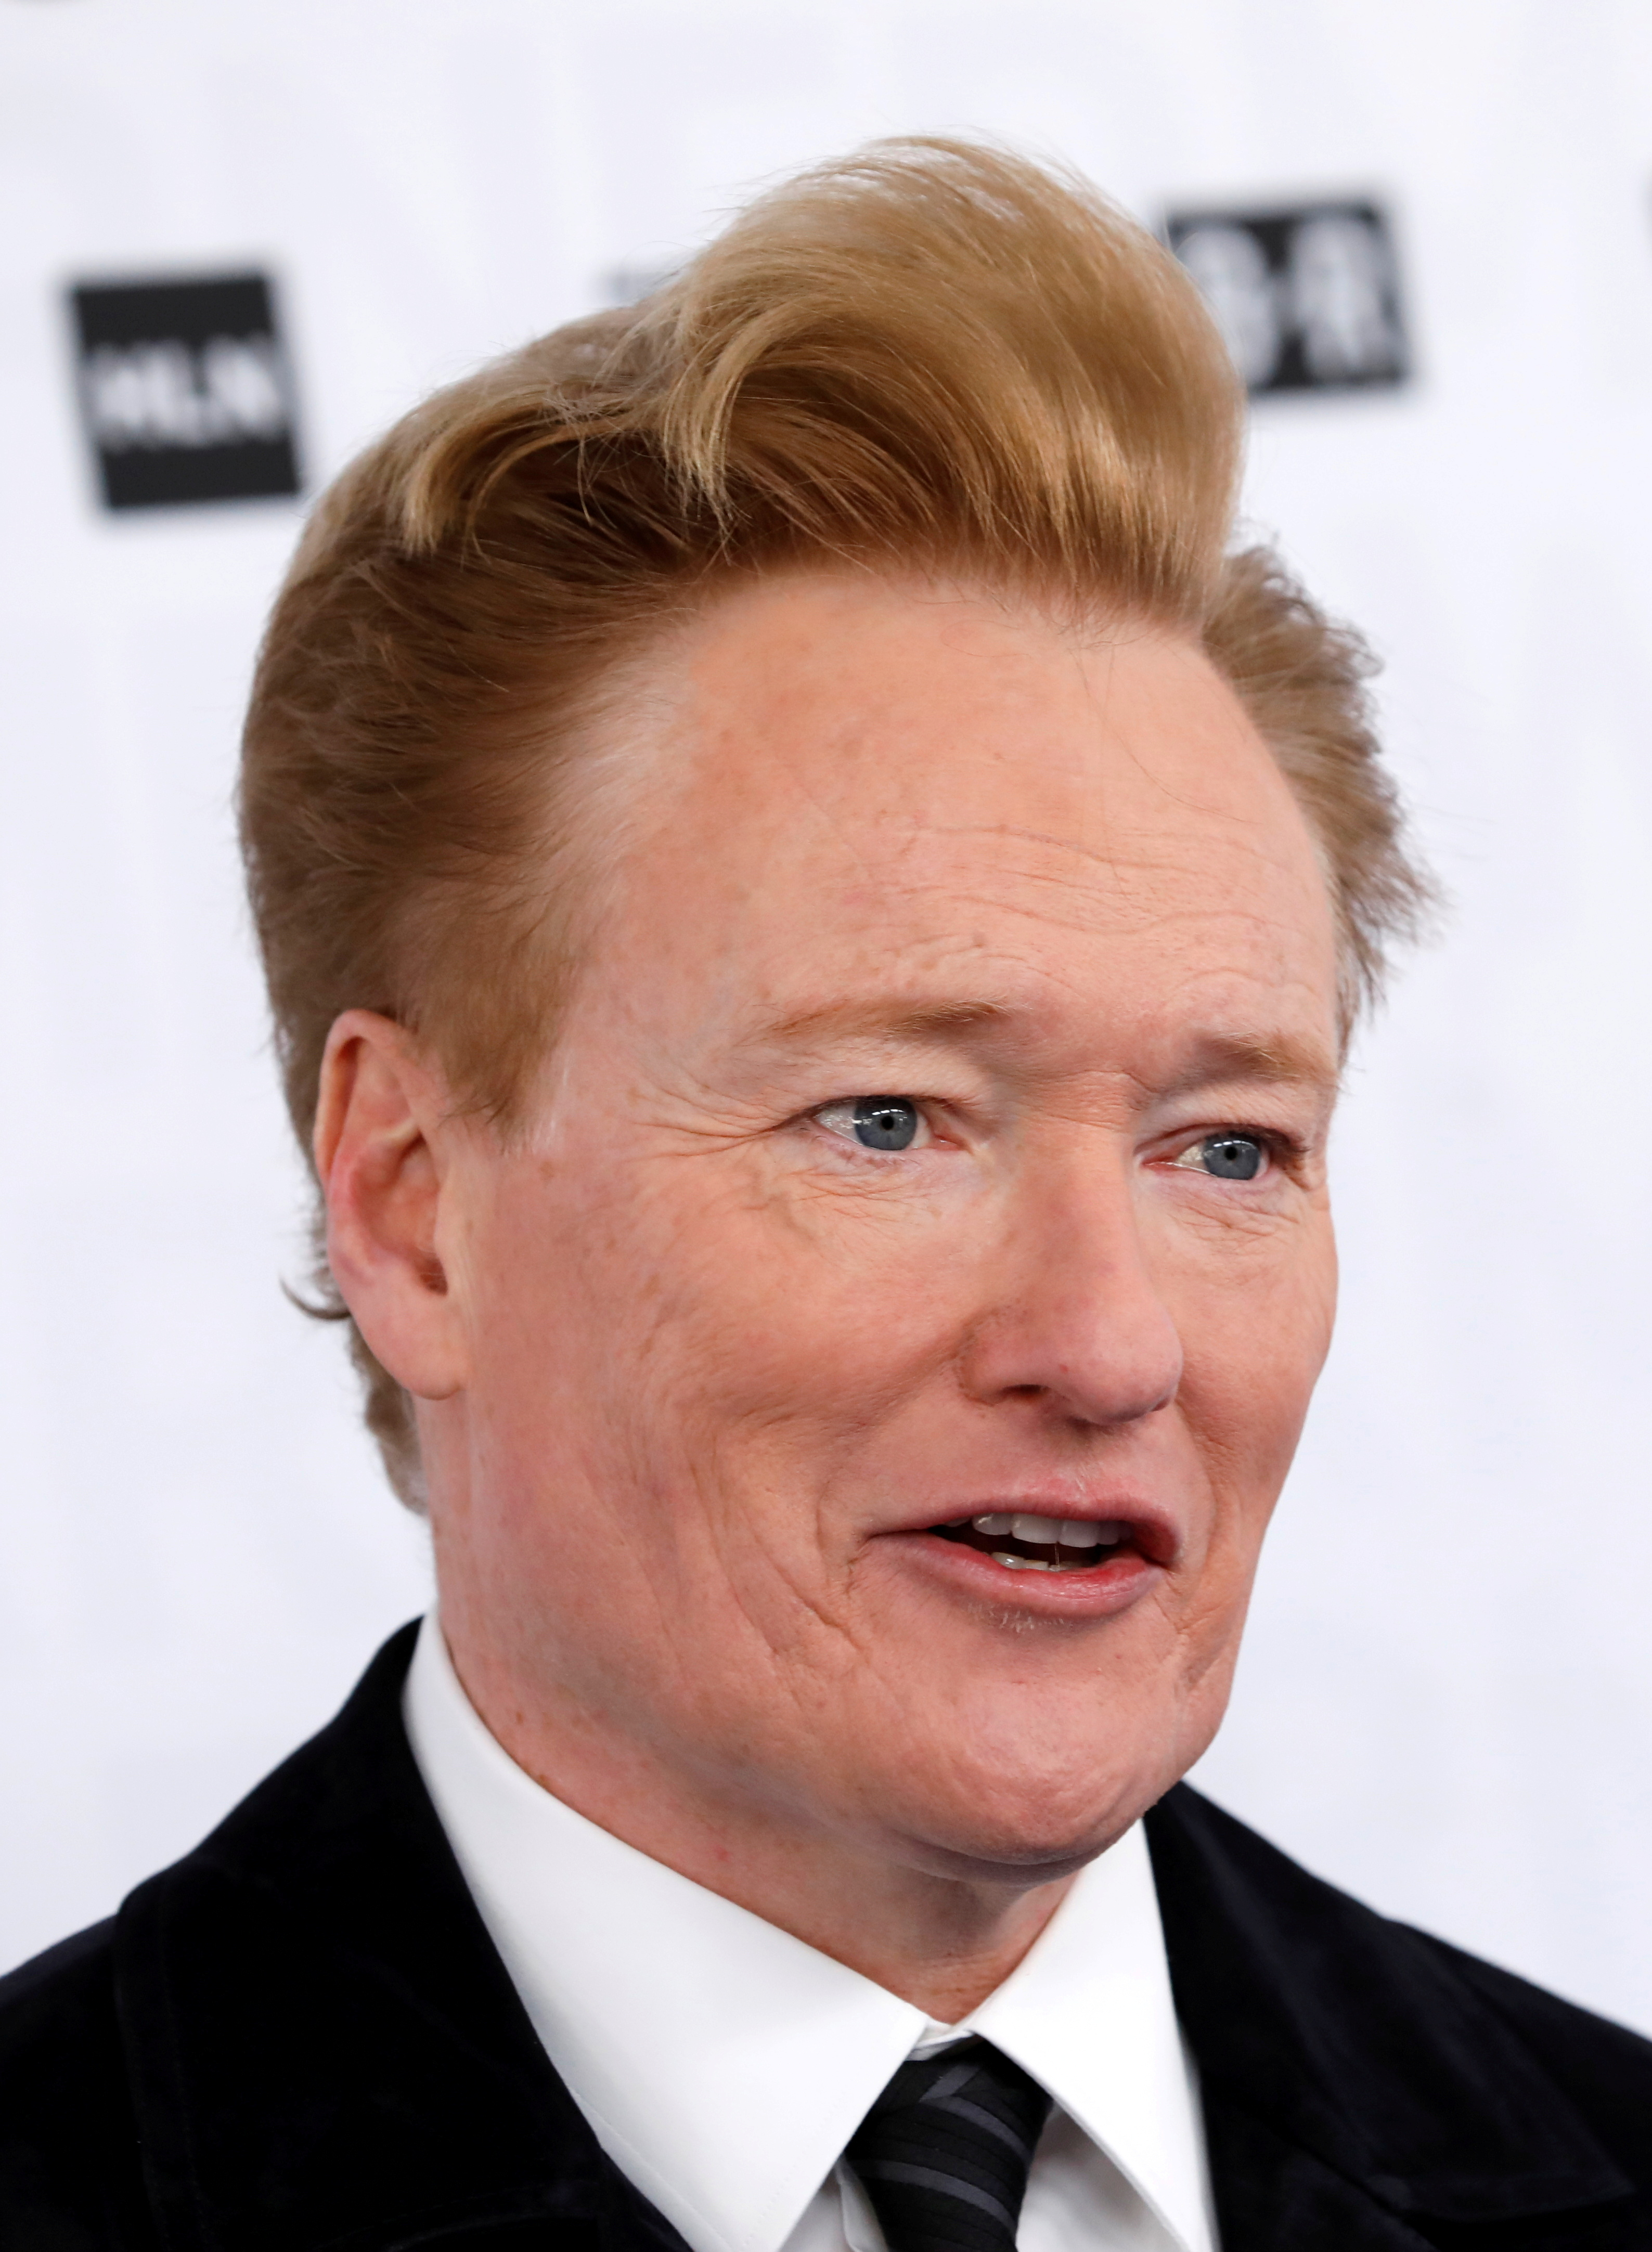 Comedian Conan O'Brien poses as he arrives at the WarnerMedia Upfront event in New York City, New York, U.S., May 15, 2019. REUTERS/Mike Segar